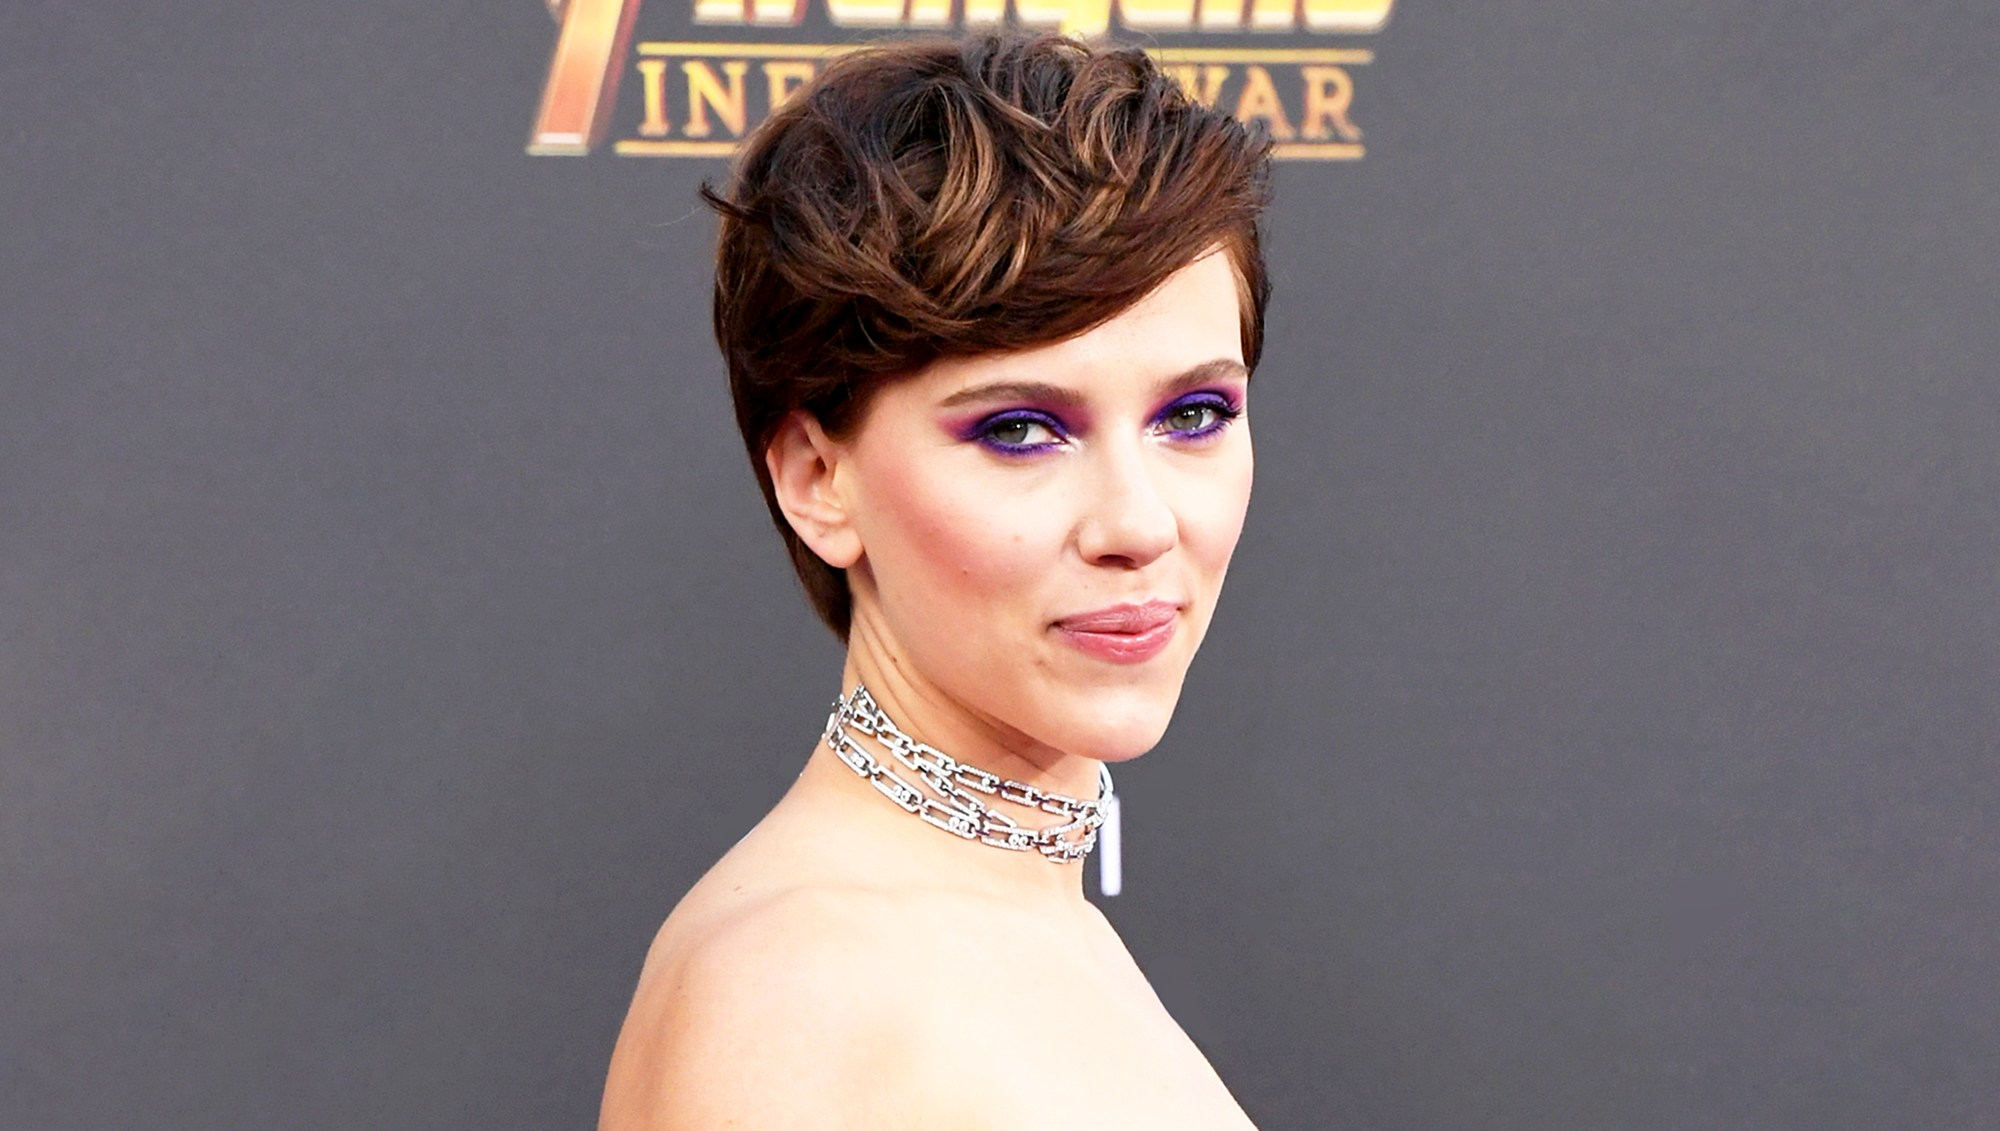 Scarlett Johansson attends the 2018 premiere of Disney and Marvel's 'Avengers: Infinity War' in Los Angeles, California.